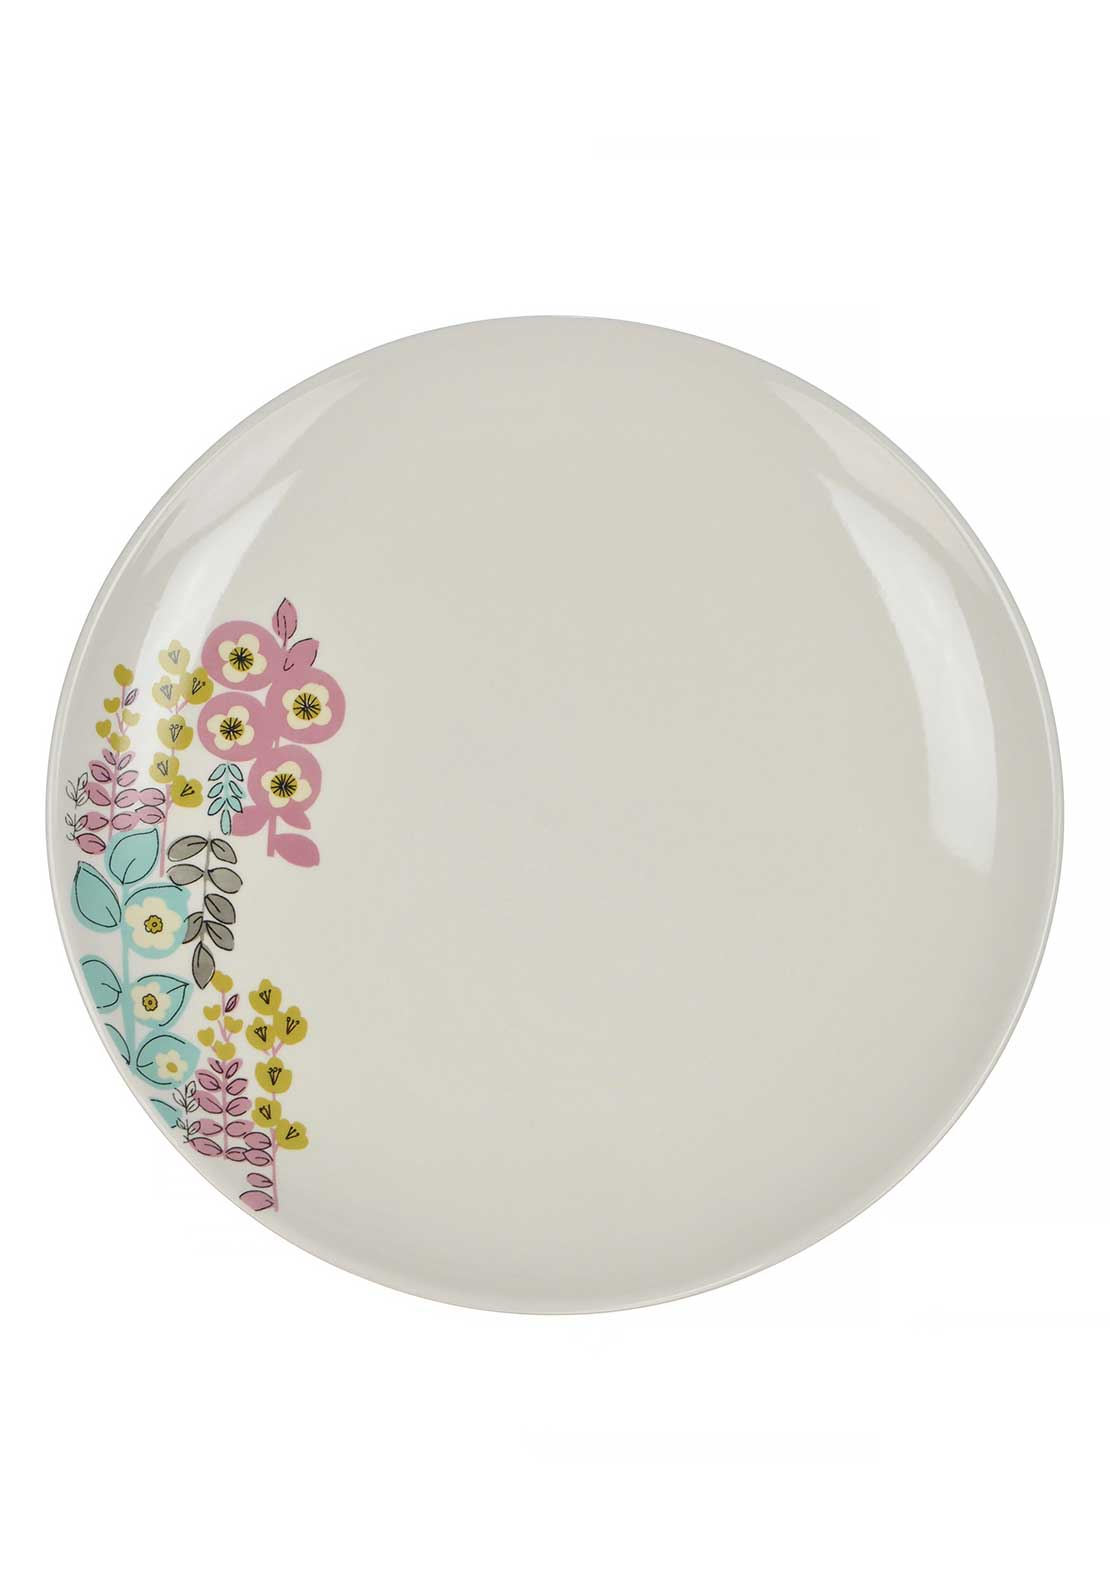 Katie Alice Pretty Retro Floral Print Dinner Plate, Cream Multi